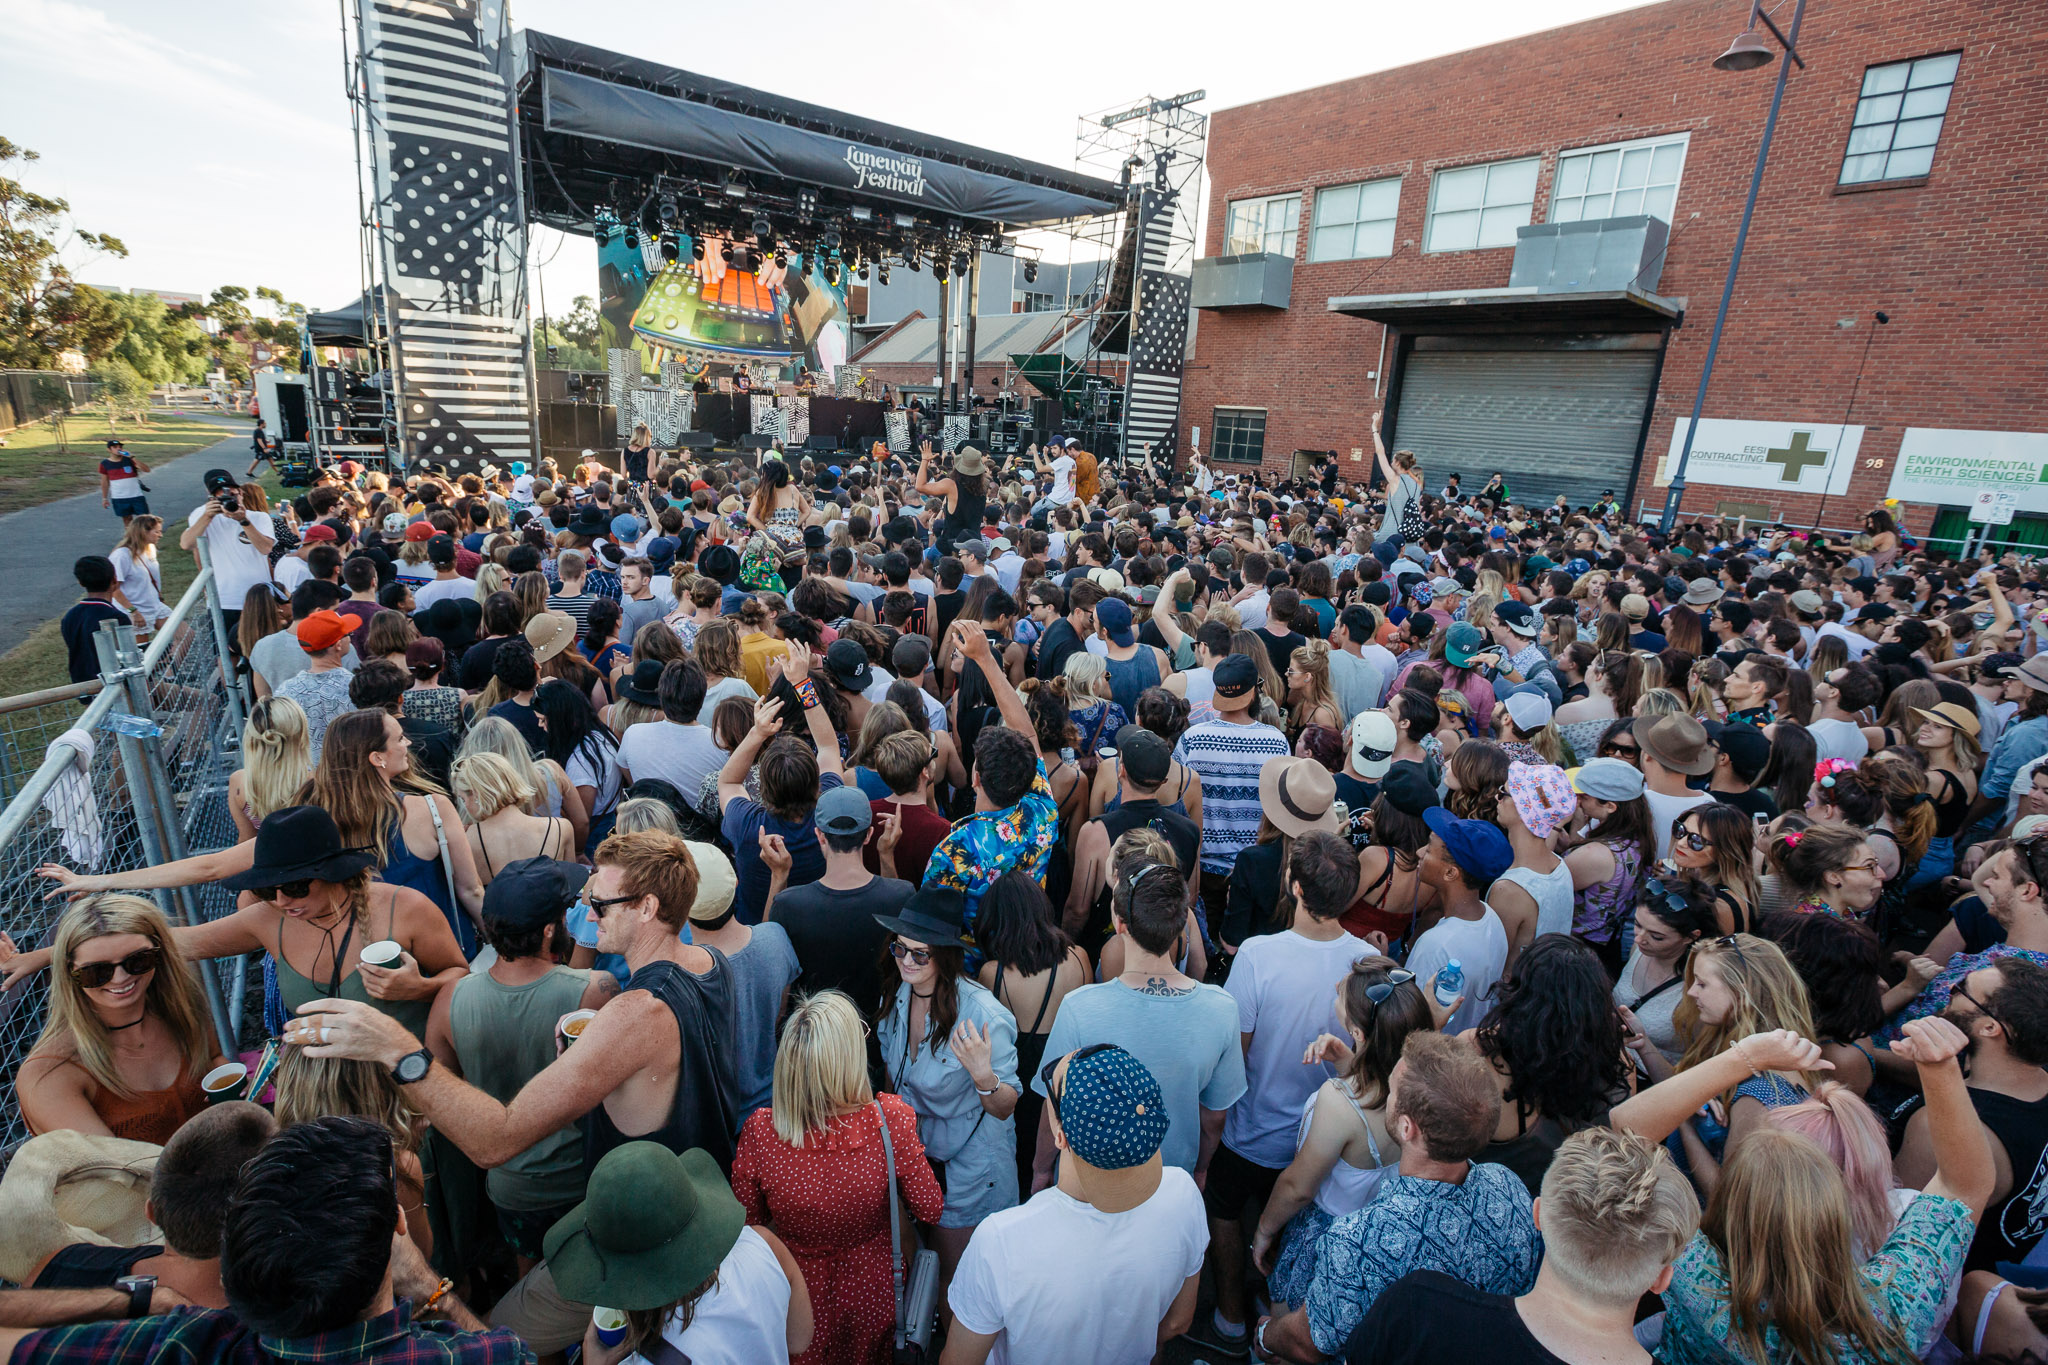 The Very West Stage - Melbourne Laneway Festival 2016